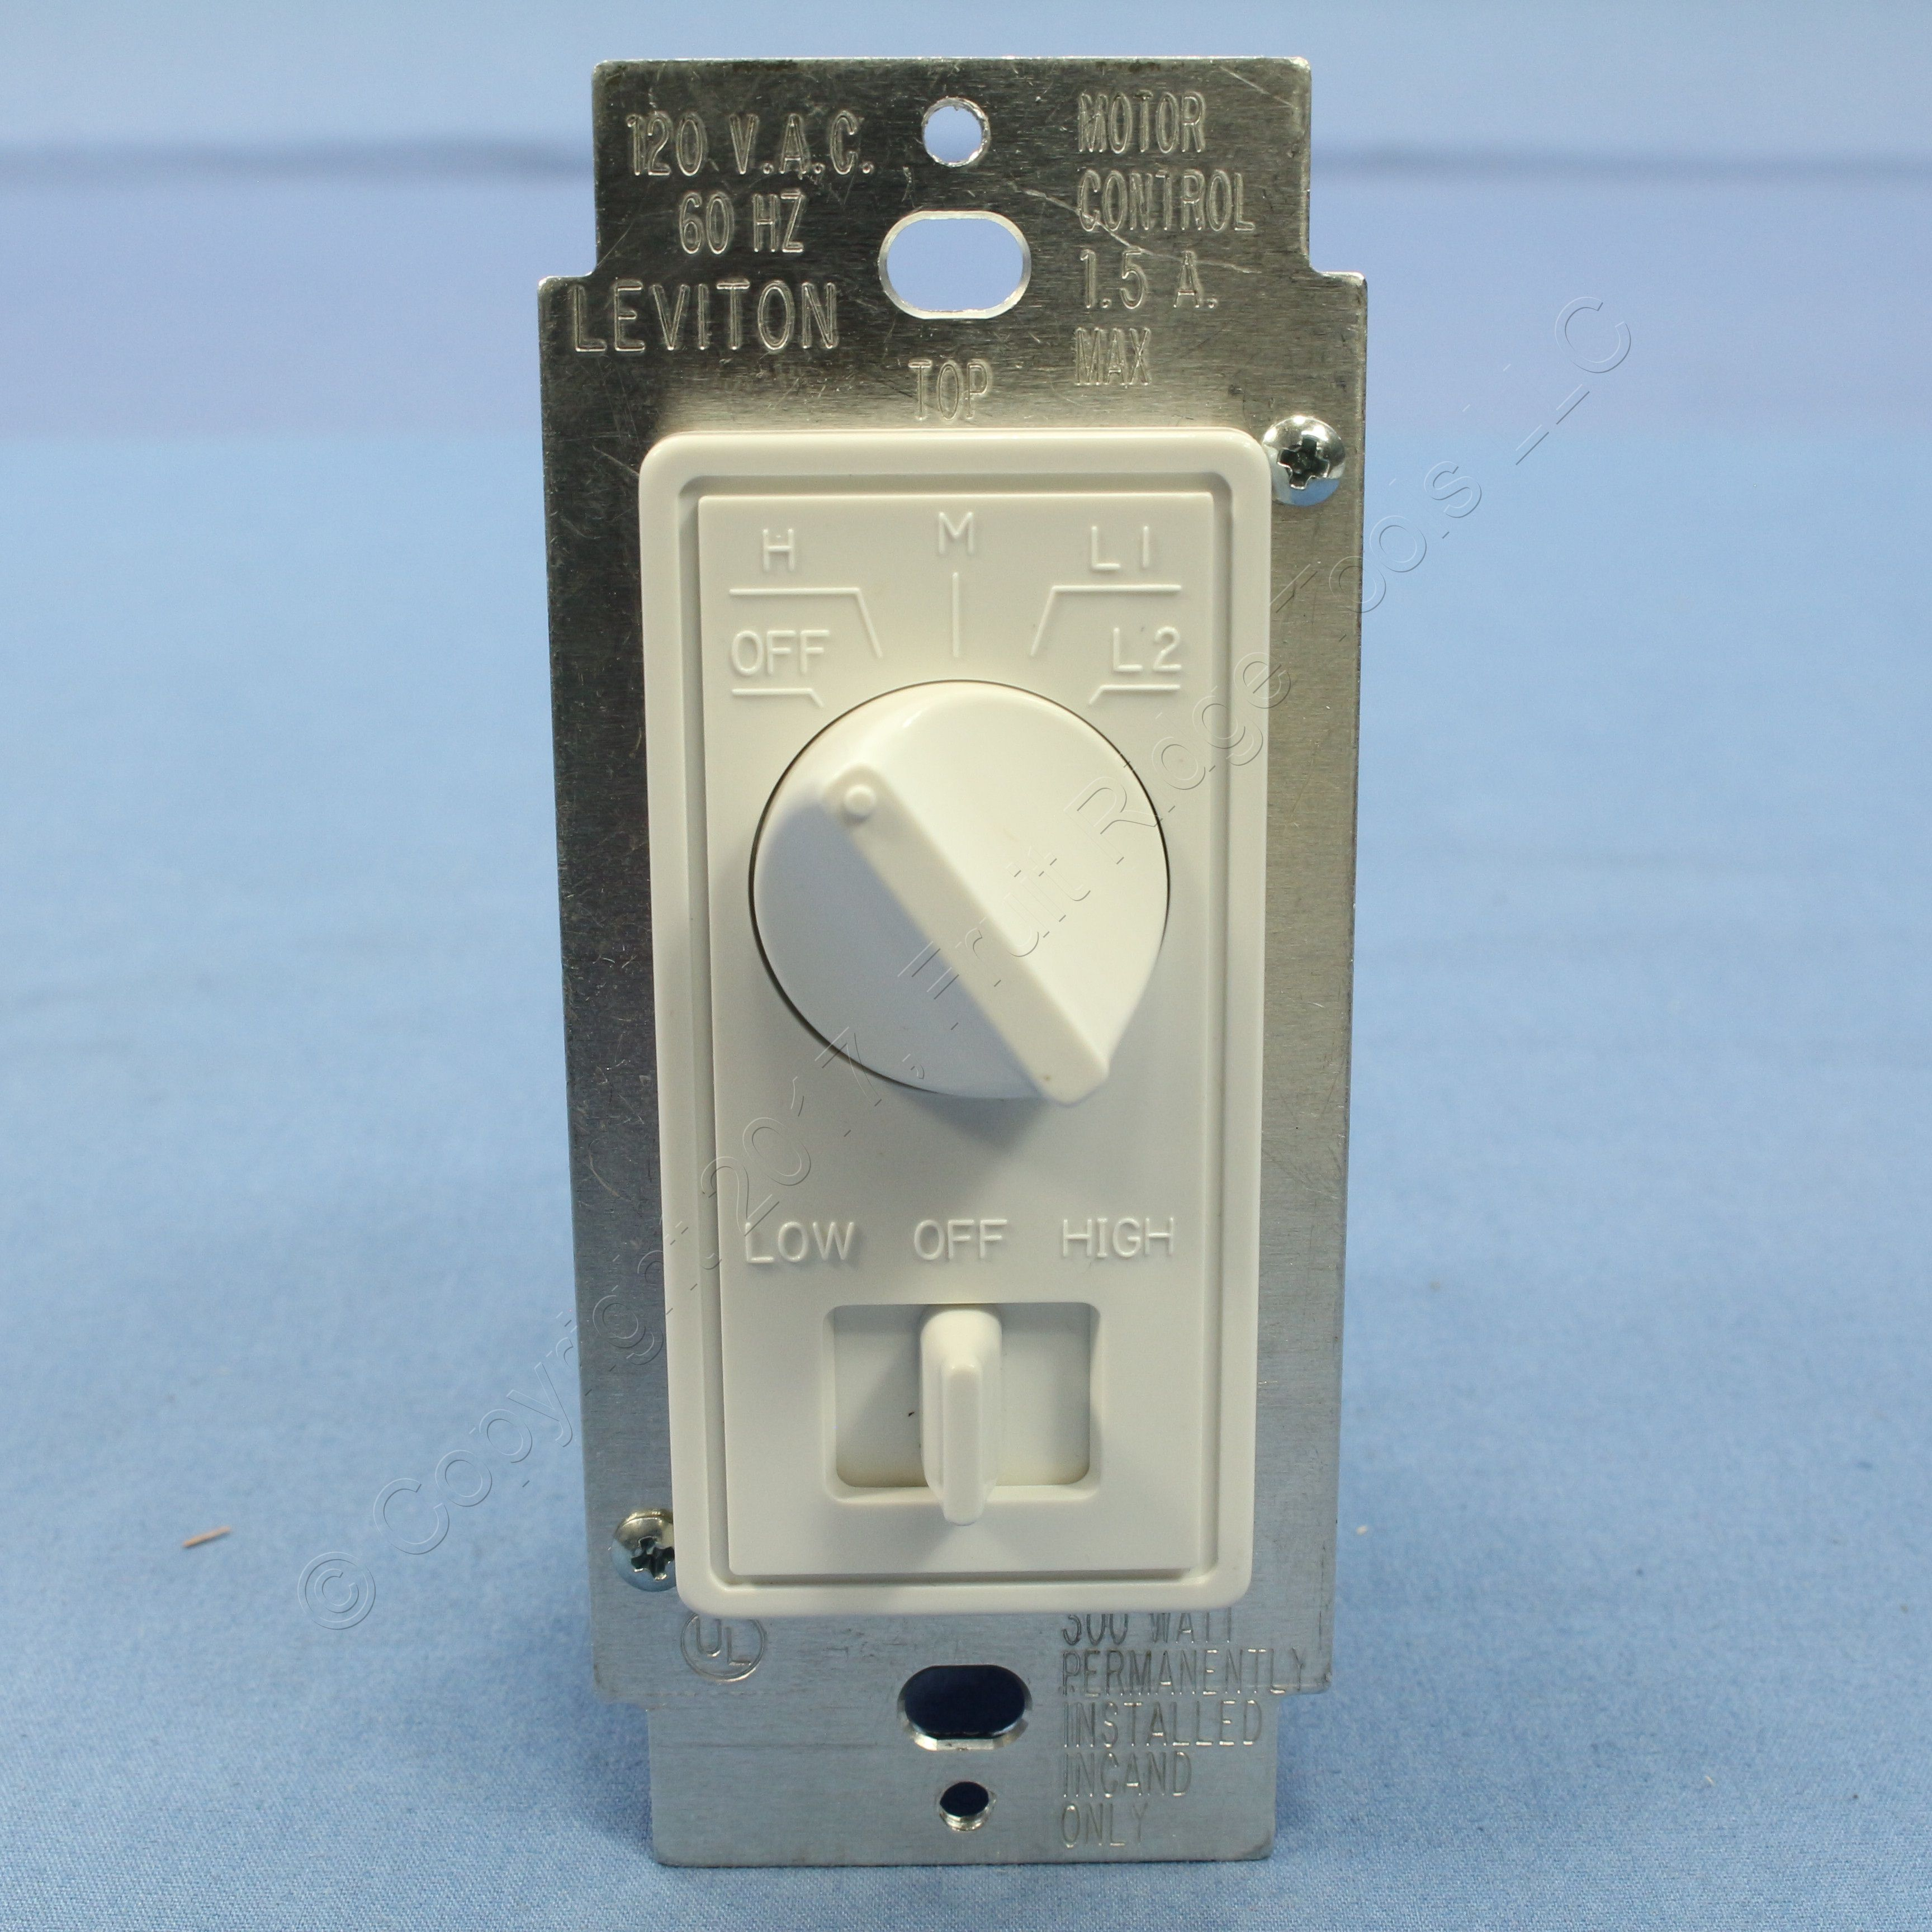 Leviton Vpt241lz Timer Wiring. Diagrams. 5 Wire Live Well Timer ...